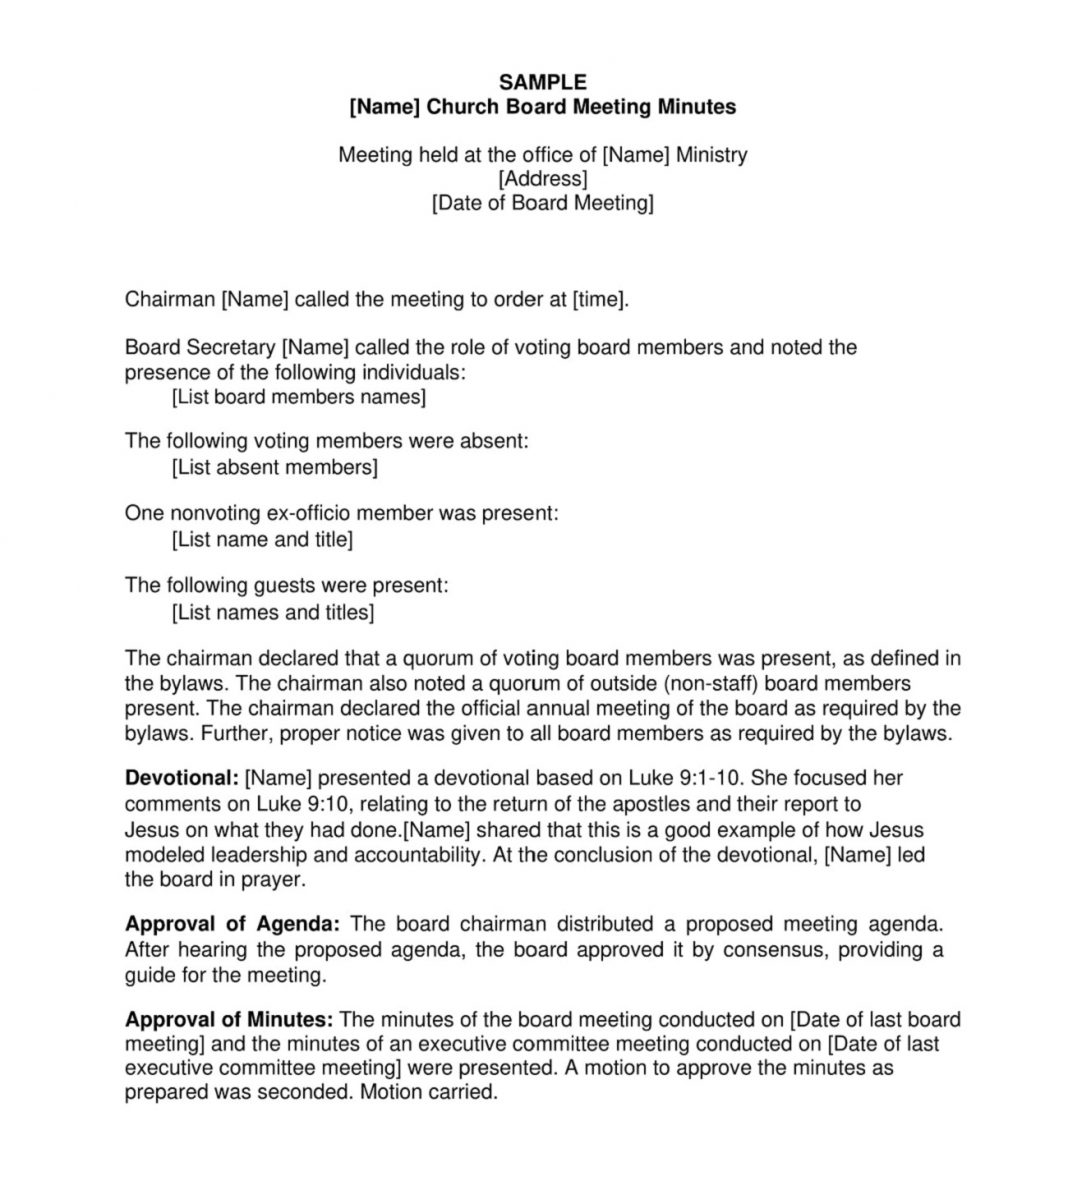 Church Board Minutes Sample Agenda Staff Meeting Format How To Write A End Of Year Leadership Pdf Preside Over  Template Large